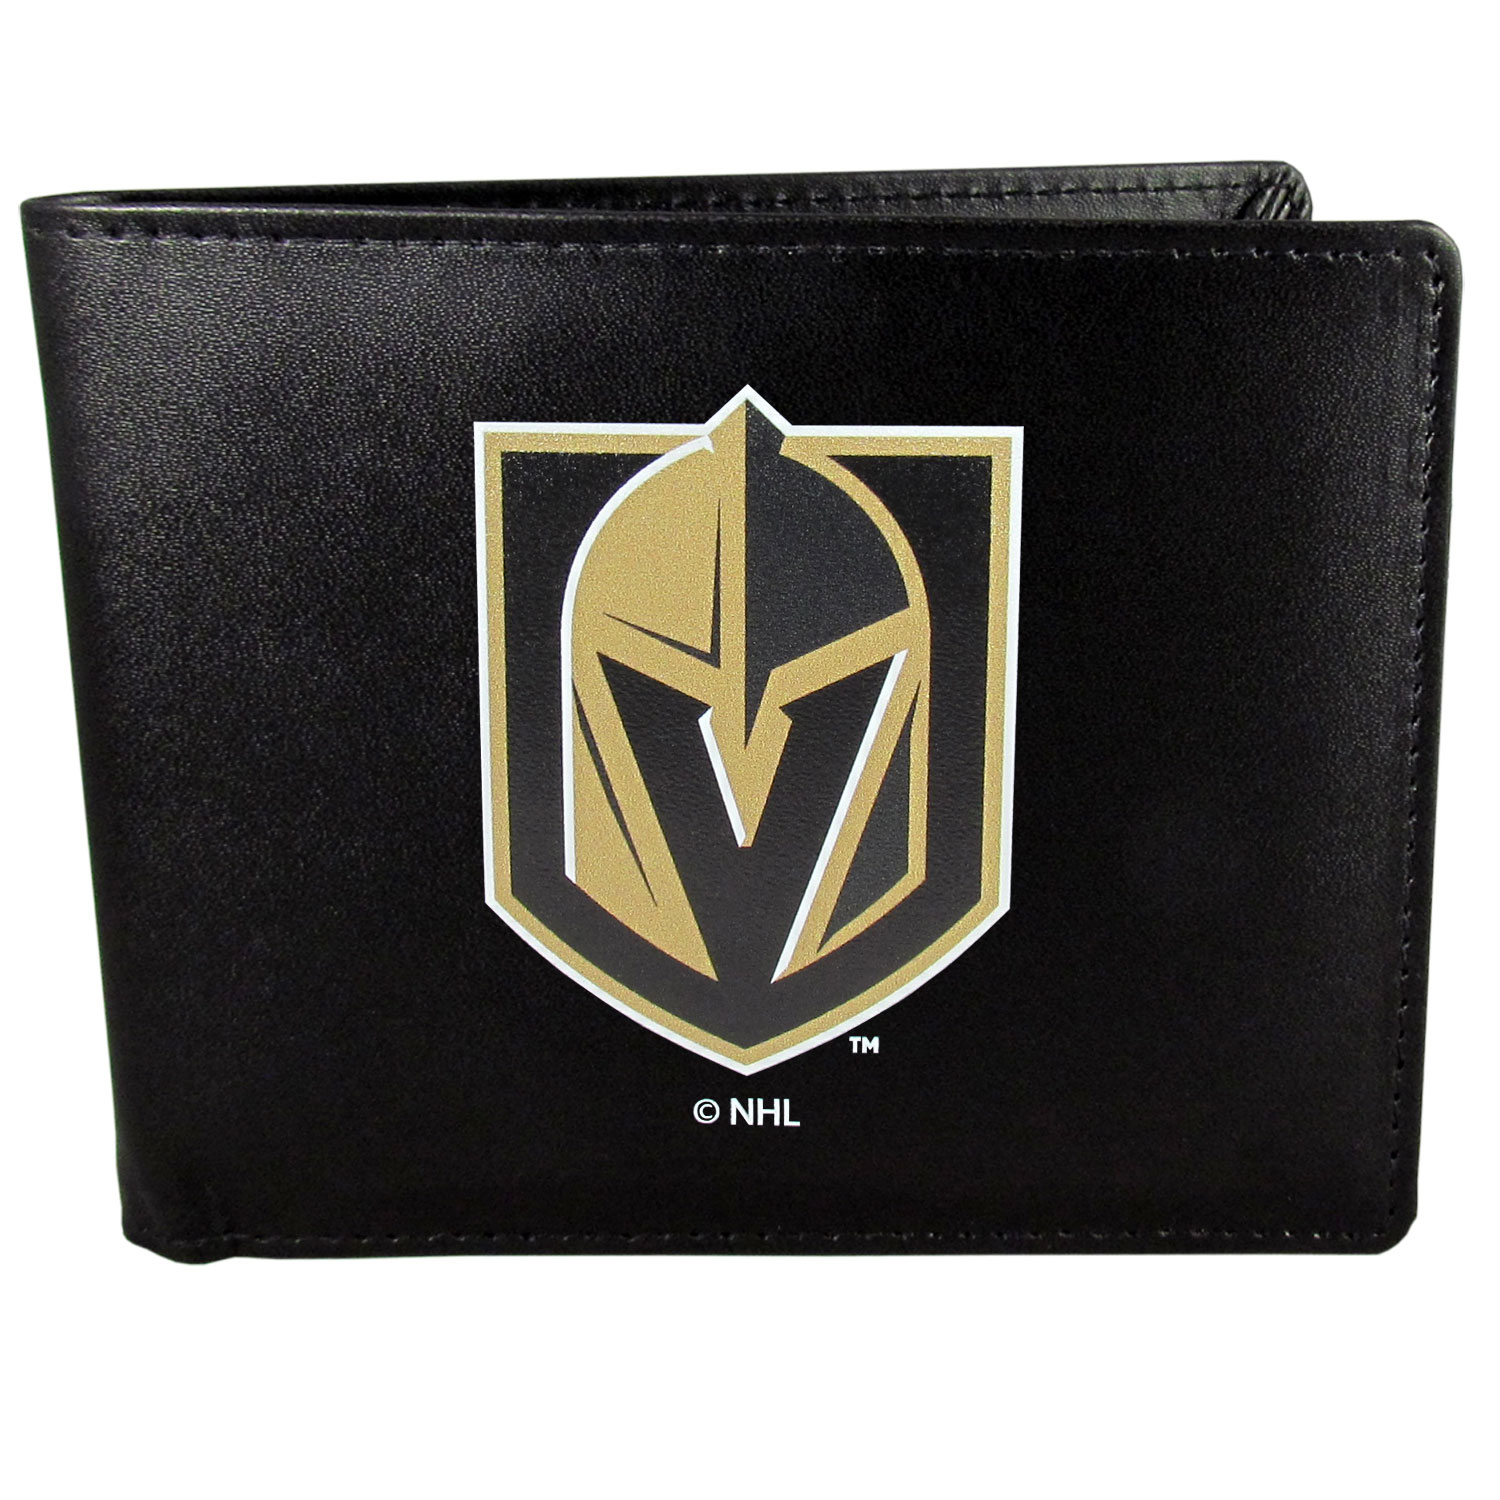 Vegas Golden Knights® Leather Bi-fold Wallet, Large Logo - Our classic fine leather bi-fold wallet is meticulously crafted with genuine leather that will age beautifully so you will have a quality wallet for years to come. The wallet opens to a large, billfold pocket and numerous credit card slots and has a convenient windowed ID slot. The front of the wallet features an extra large Vegas Golden Knights® printed logo.